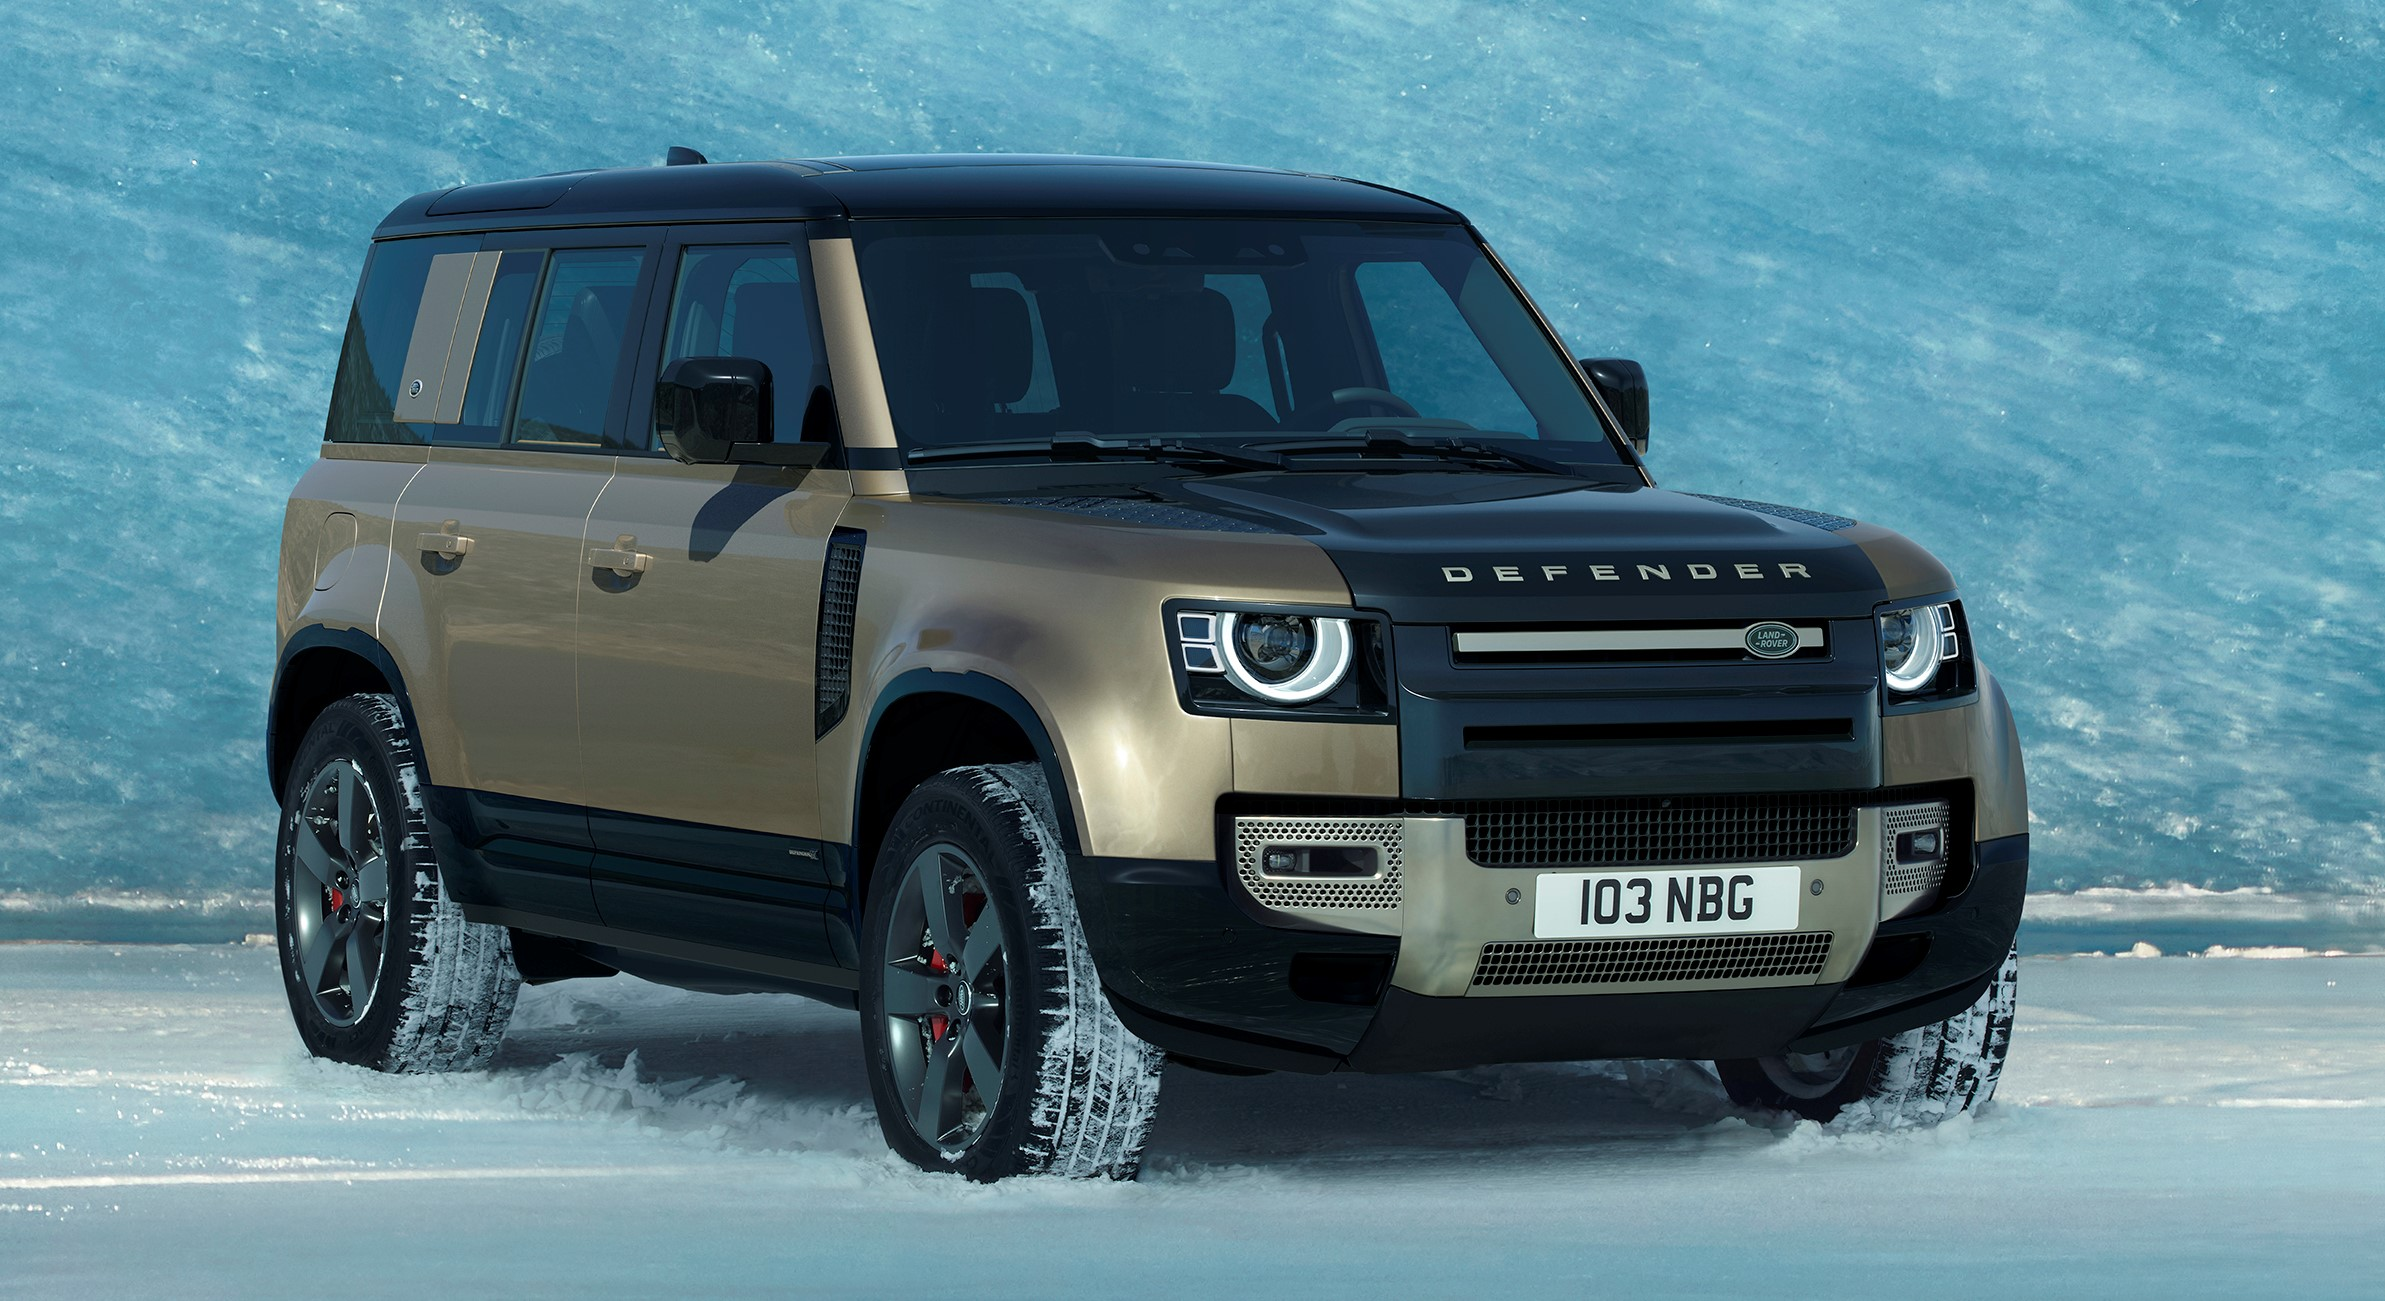 2020 Land Rover Discovery Is Built On The New Architecture >> The New 2020 Land Rover Defender Myautoworld Com